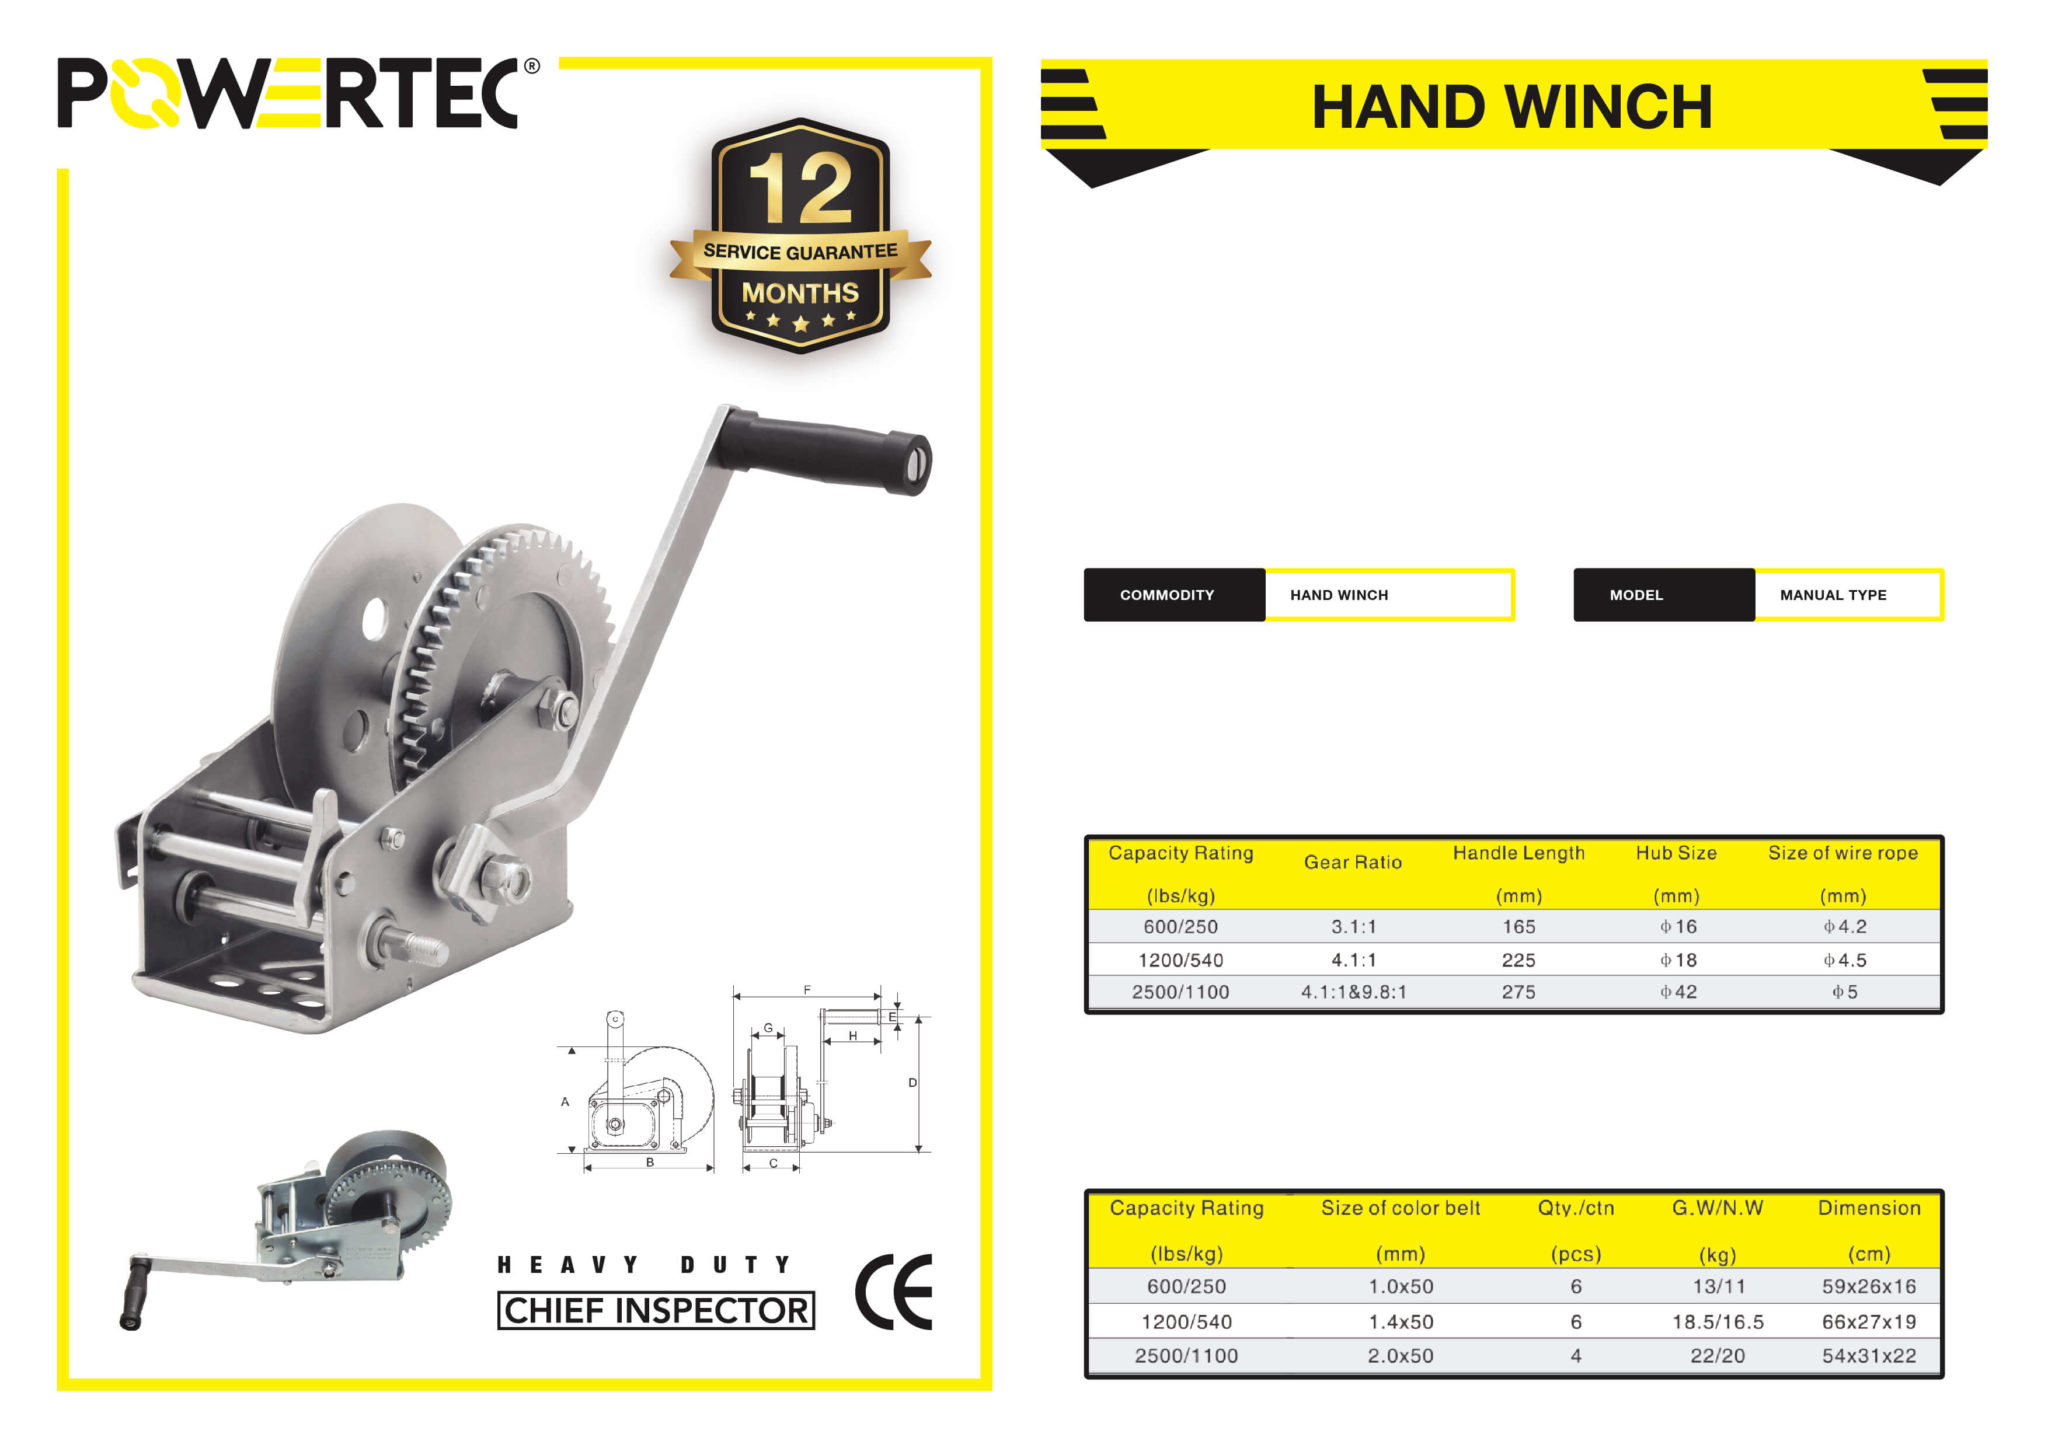 POWERTEC HAND WINCH MANUAL BROCHURE